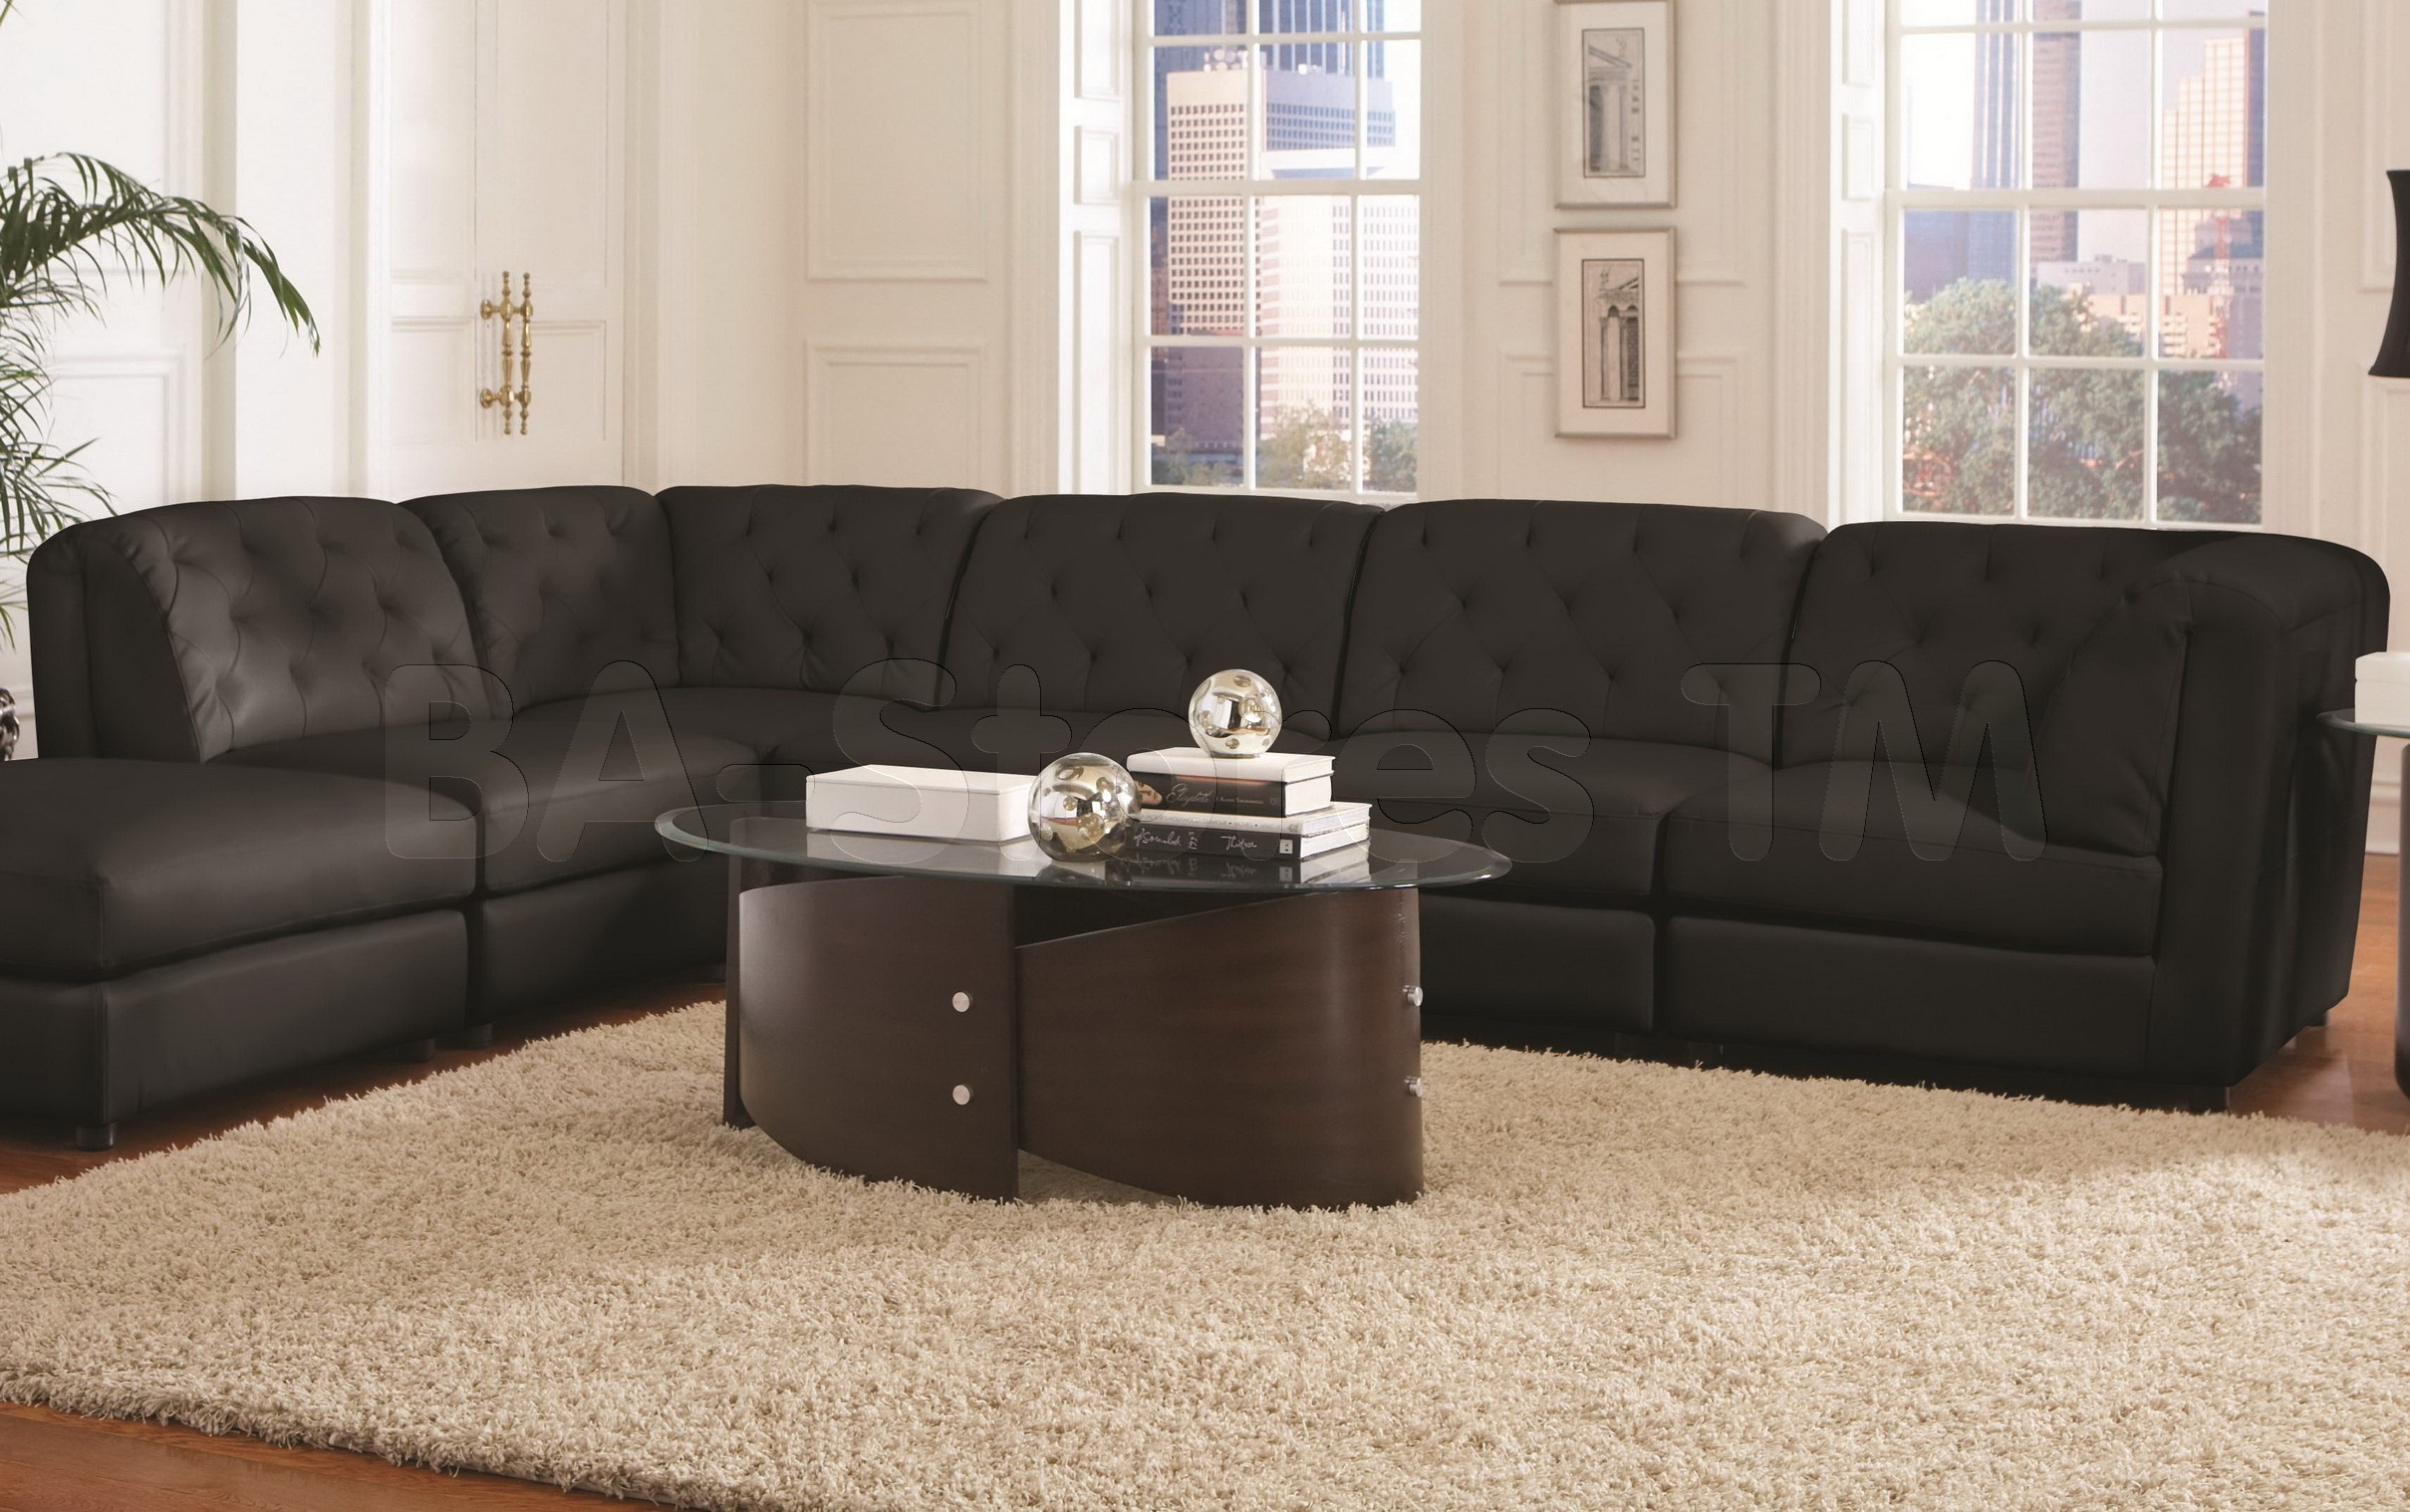 51 Sectional Sofas Cheap Attachment Cheap Sectional Sleeper Sofa Within Black Sectional Sofa For Cheap ( : cheap black sectional - Sectionals, Sofas & Couches